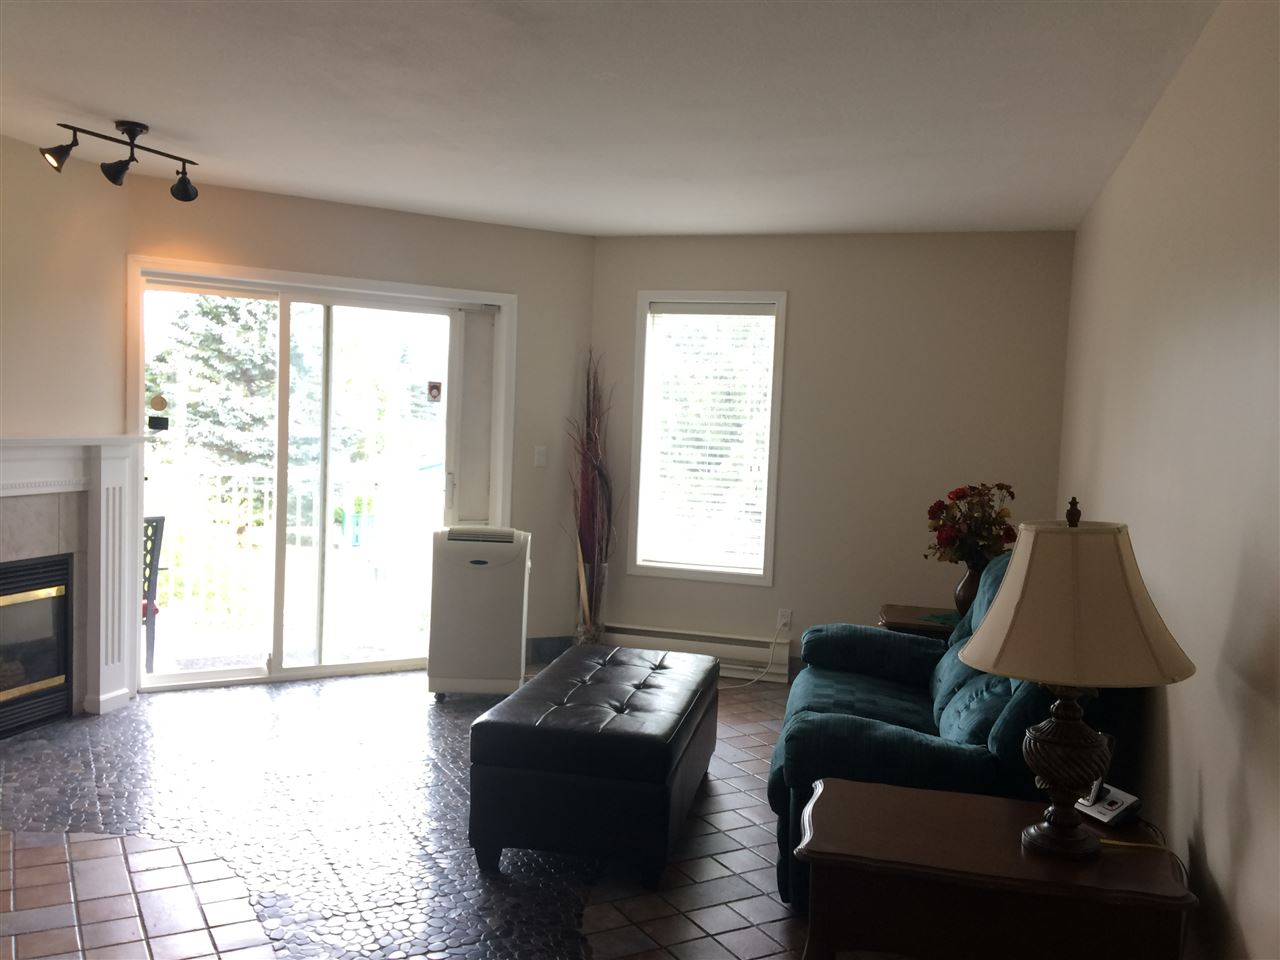 Condo Apartment at 208 5765 VEDDER ROAD, Unit 208, Sardis, British Columbia. Image 5